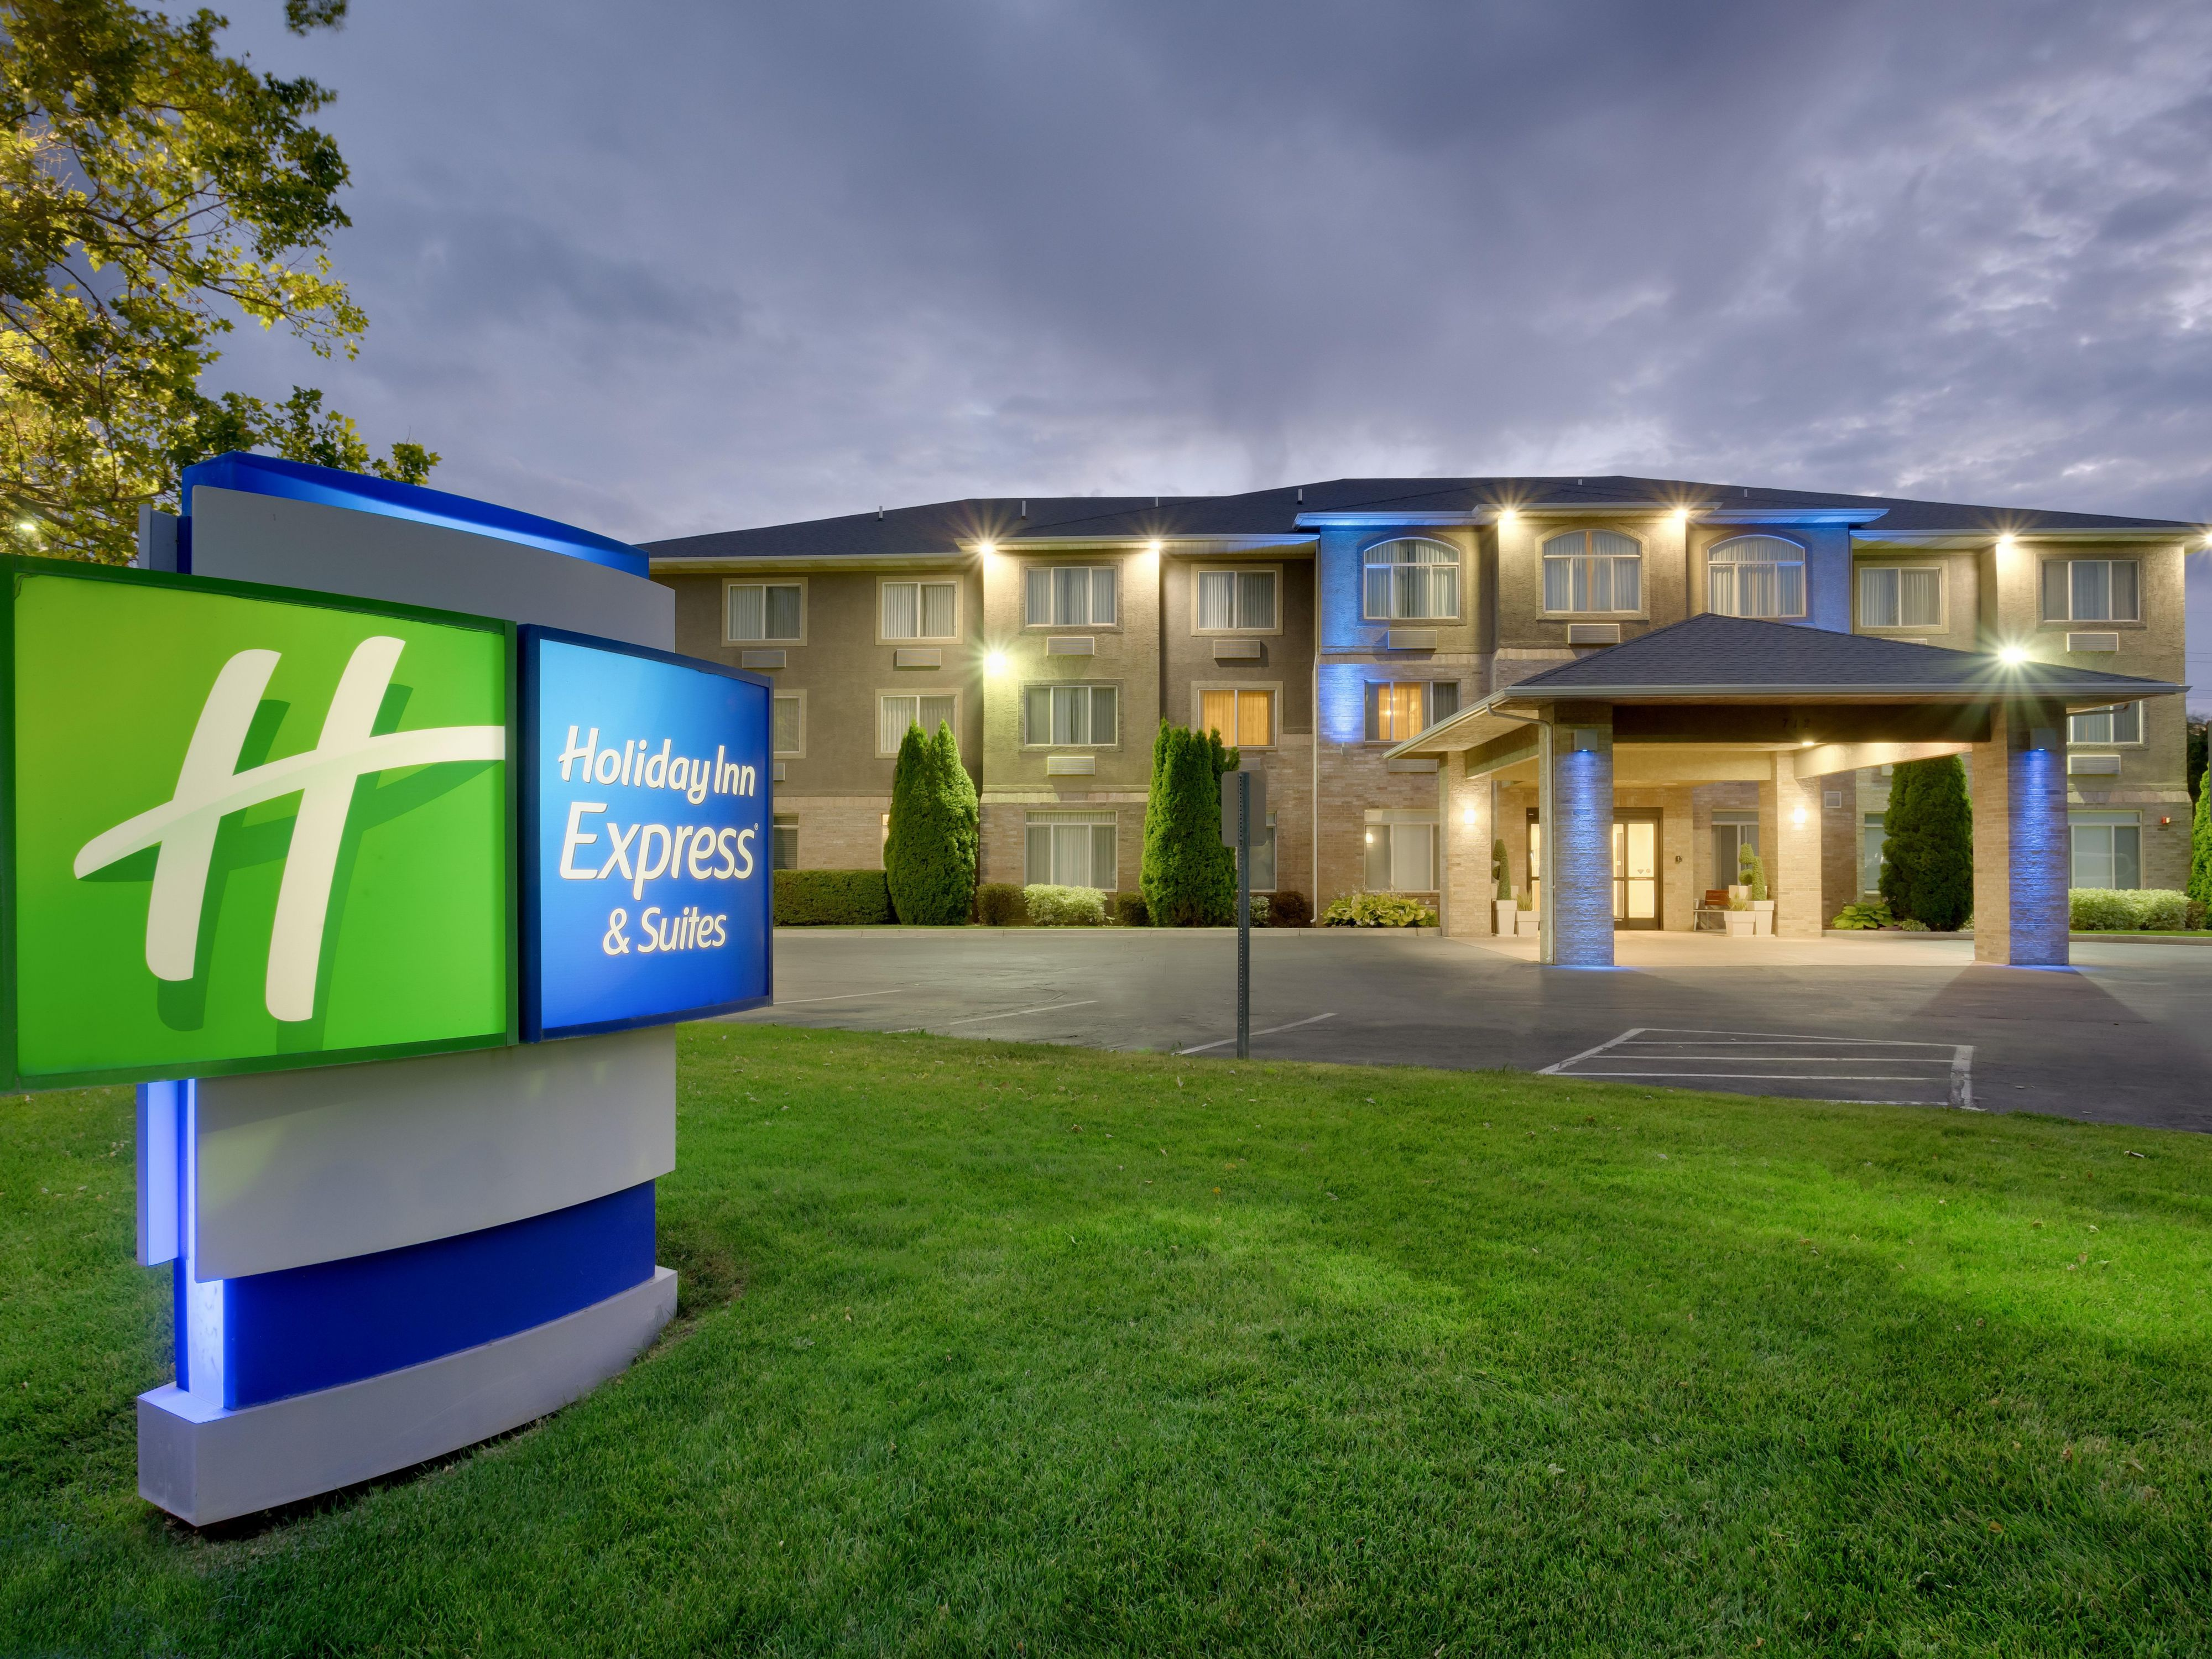 Budget Hotels In American Fork Ut Holiday Inn Express American Fork Price From Usd 122 55